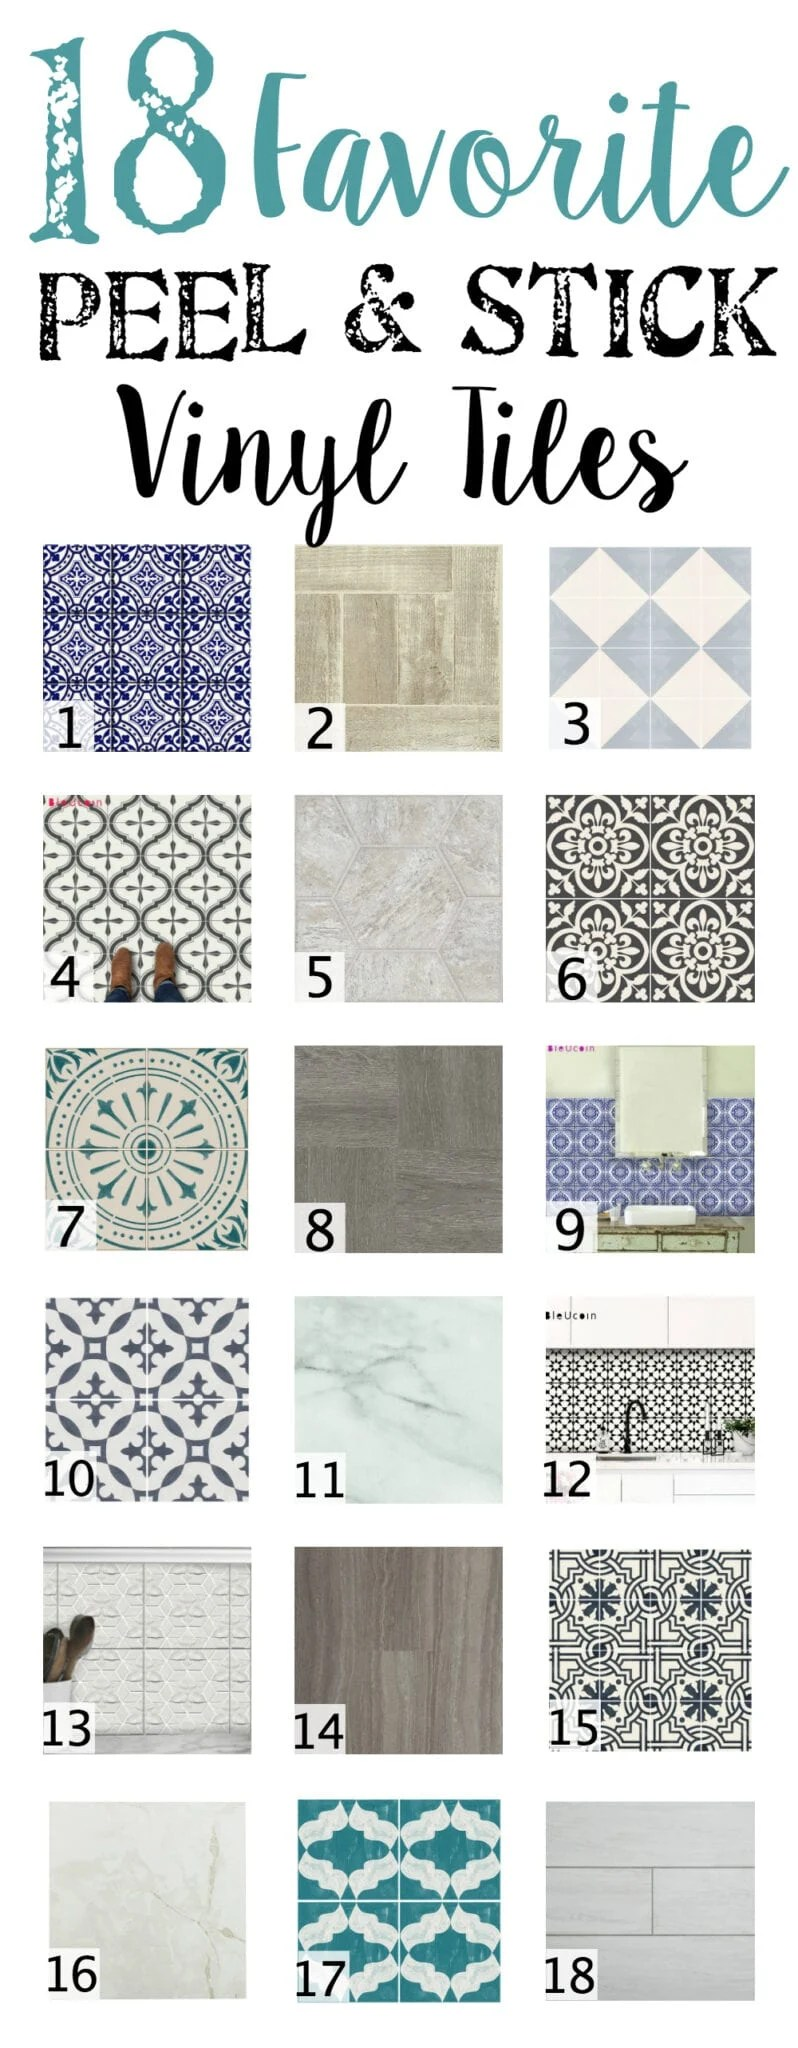 18 Favorite Peel and Stick Vinyl Tiles | blesserhouse.com - A shopping guide round-up of 18 of the best peel and stick vinyl tiles in wood-looks, stone-looks, and trendy patterns. Quick, easy, and no-mess.